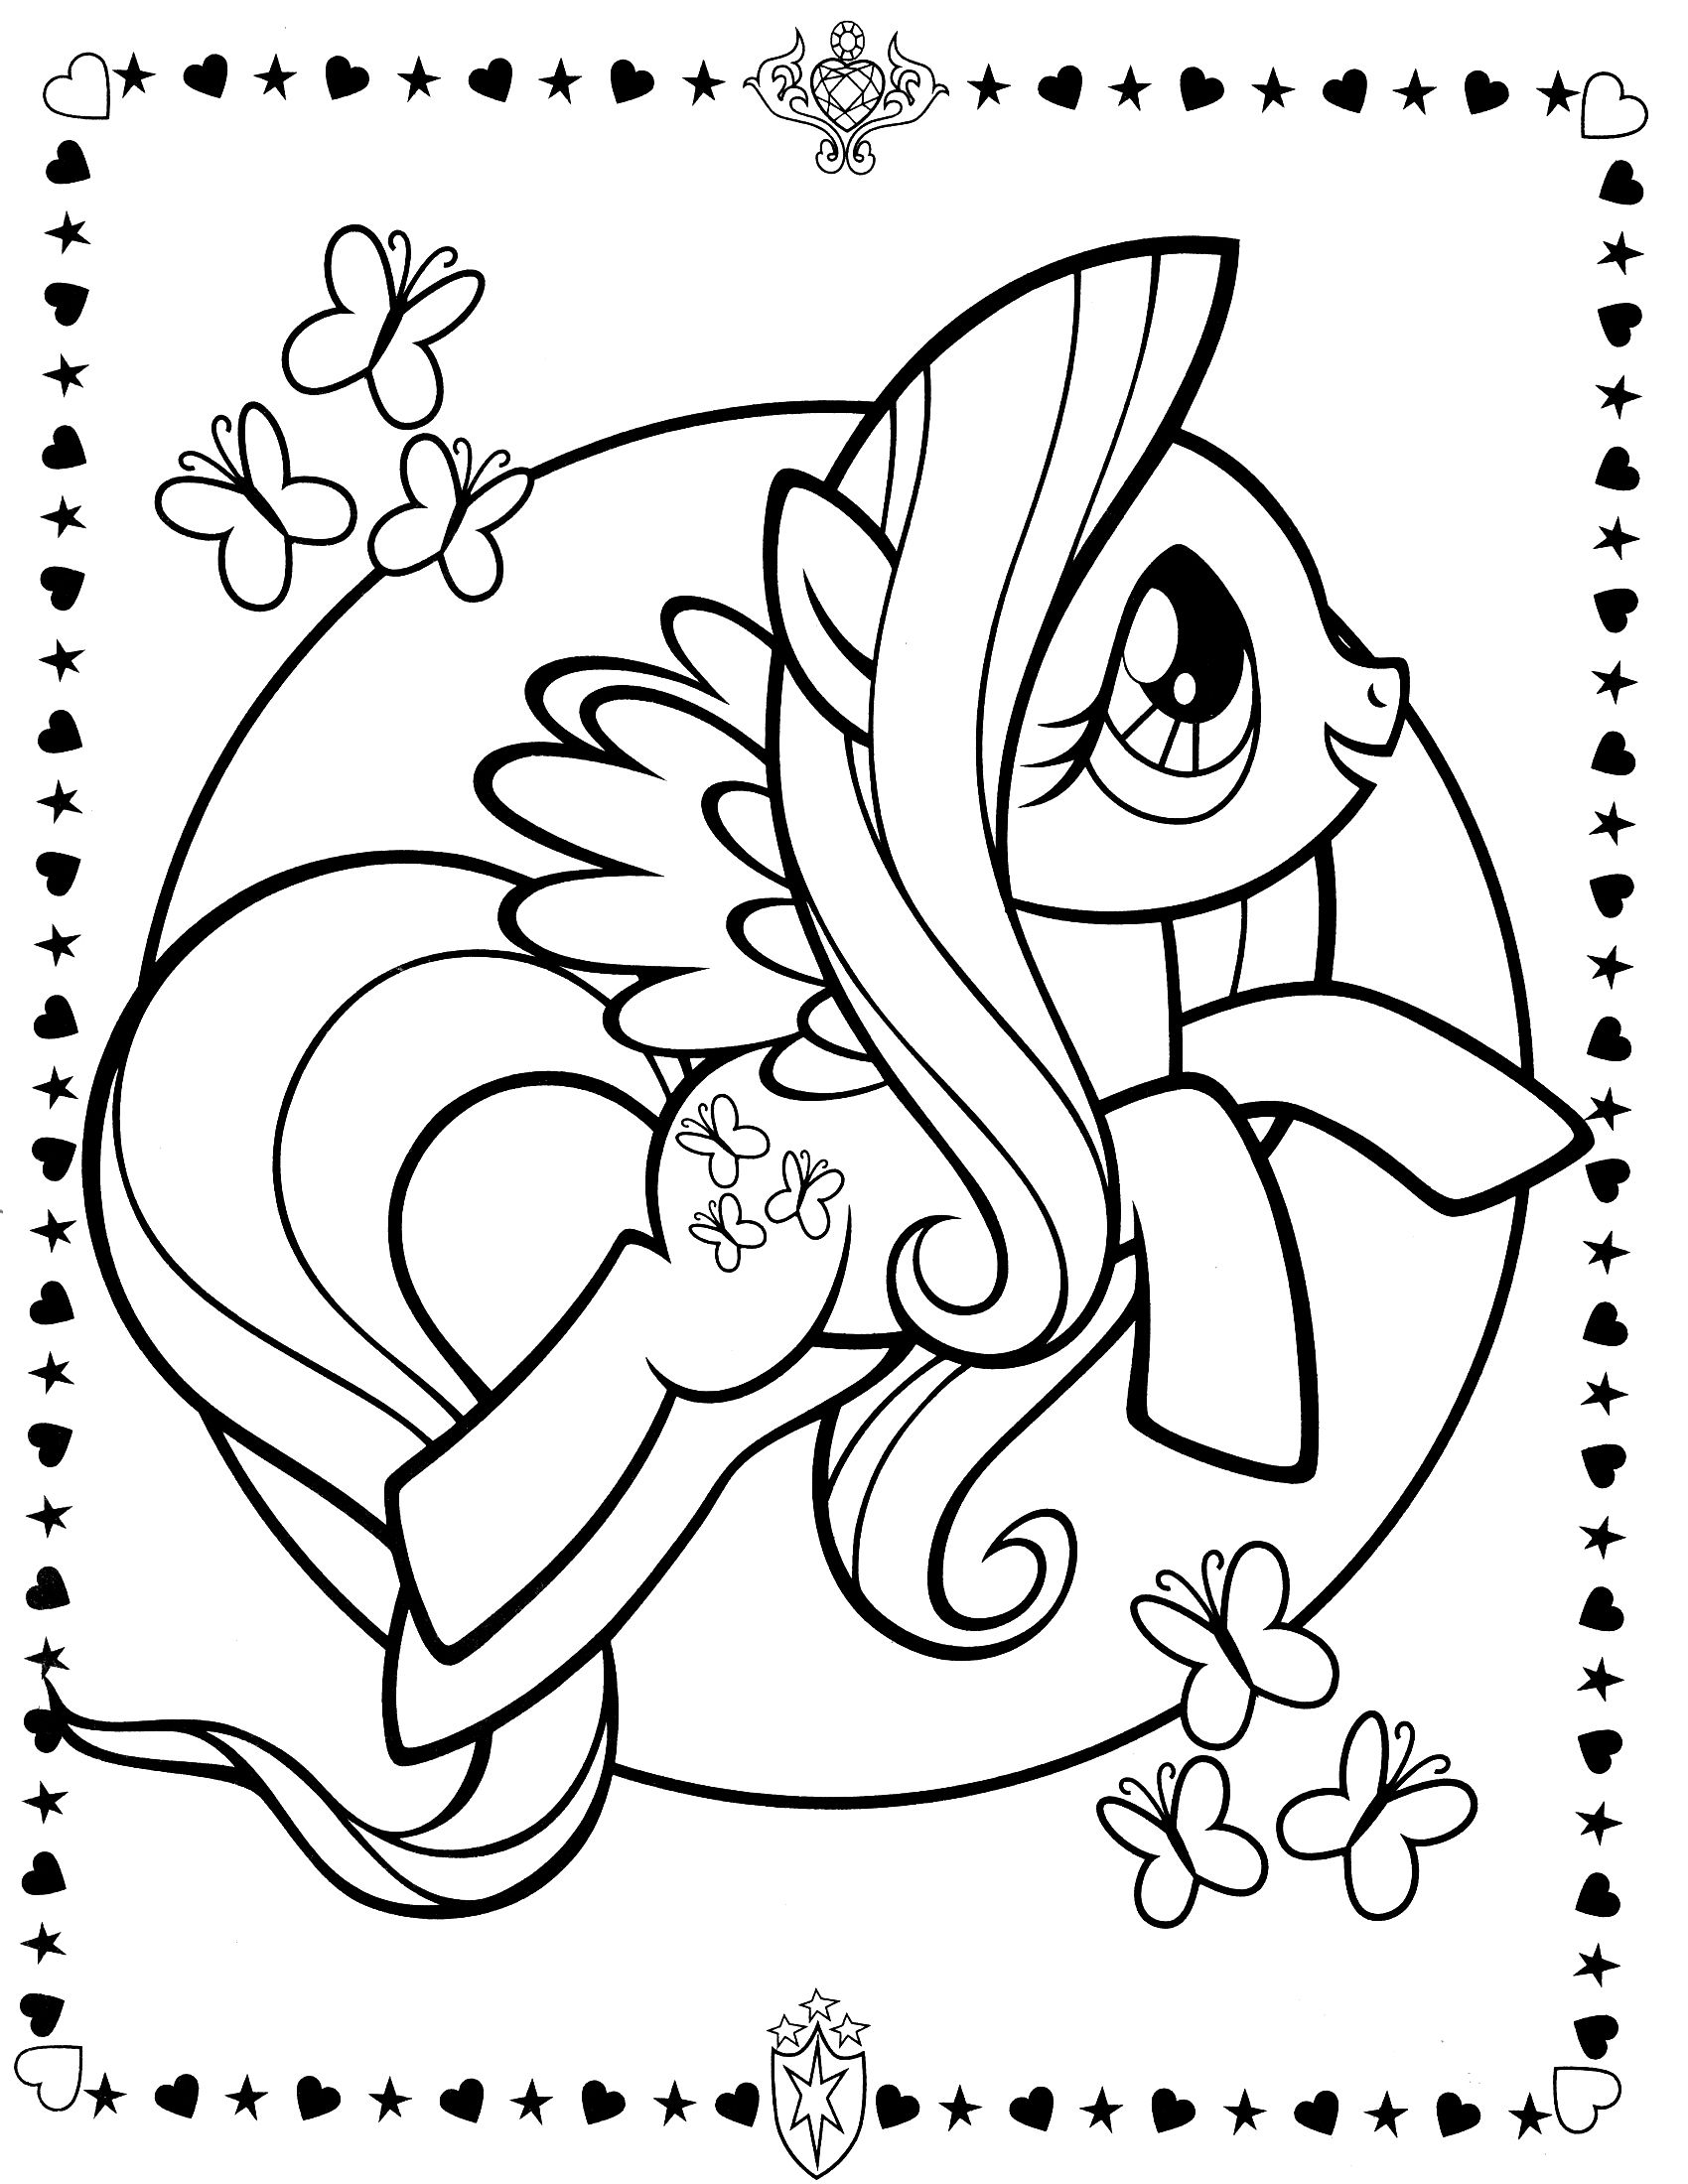 my little pony coloring pages yahoo image search results - Pony Coloring Pages